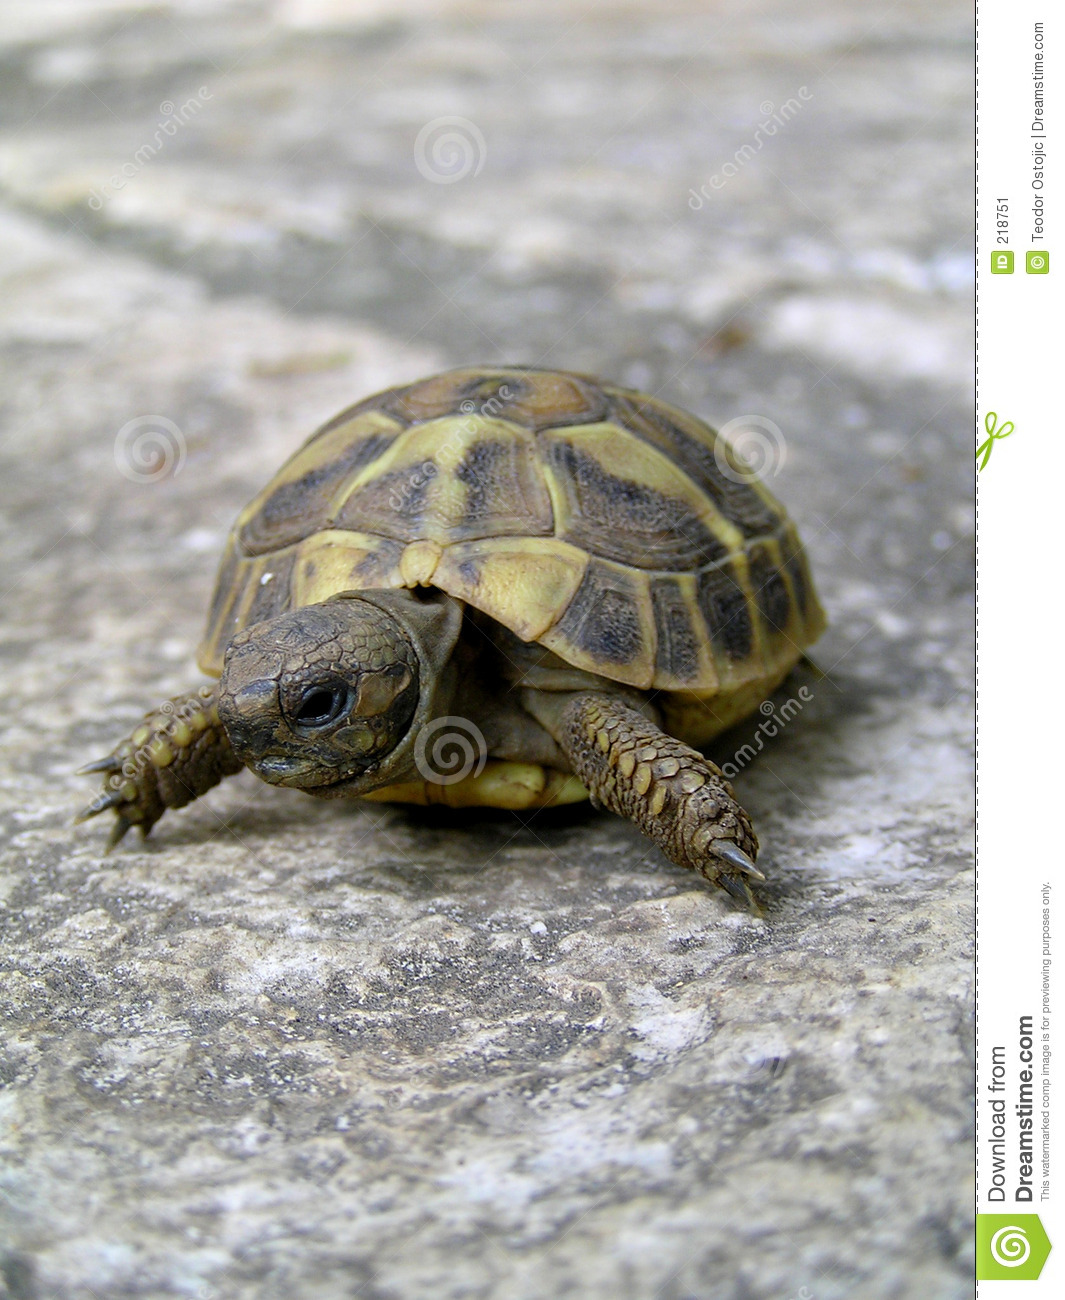 Small Turtle Stock Image - Image: 218751